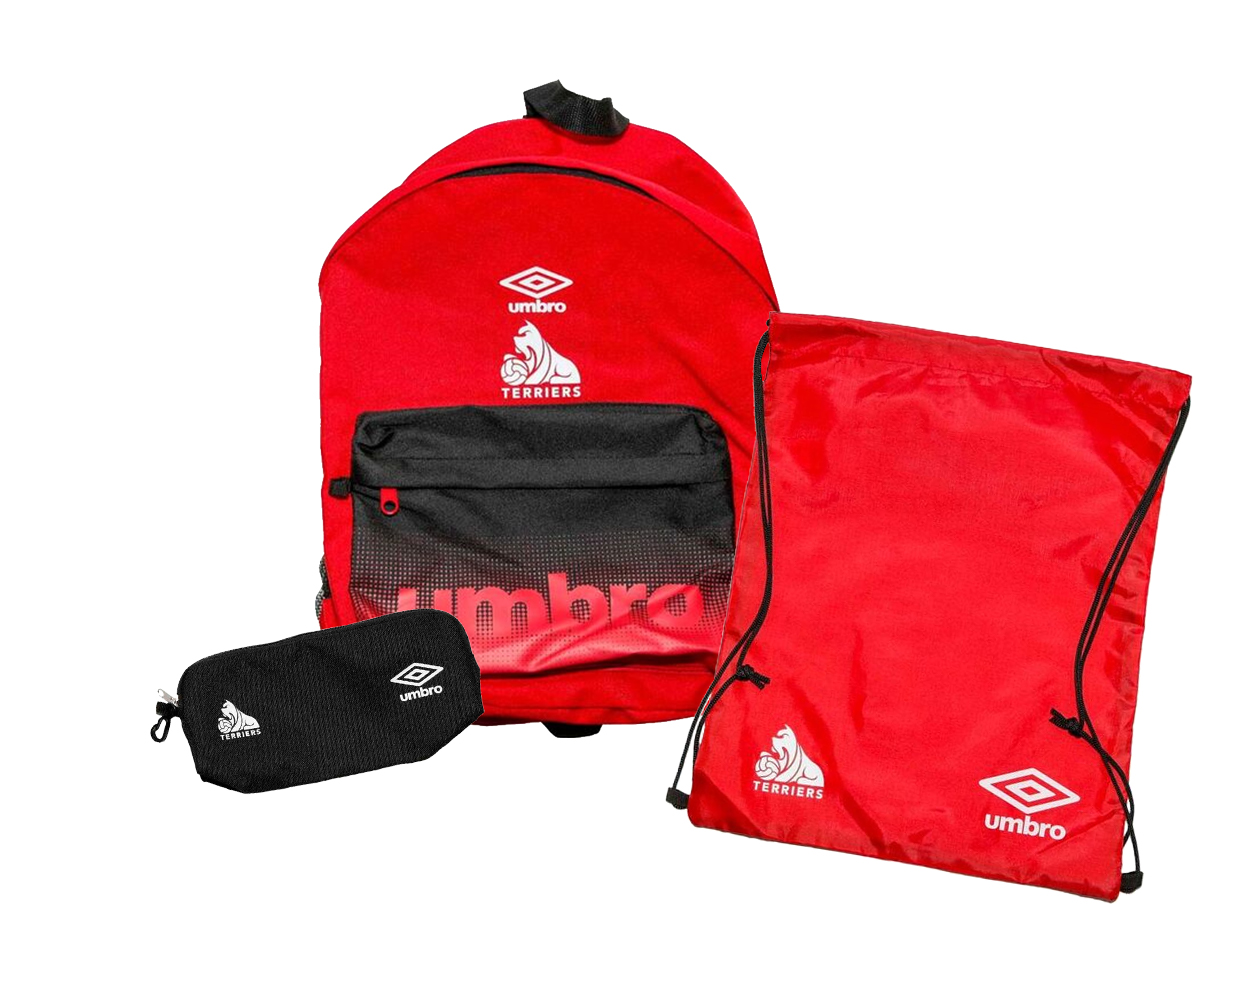 Umb Red Blk Backpack, Gymsack & Pencil Case Set